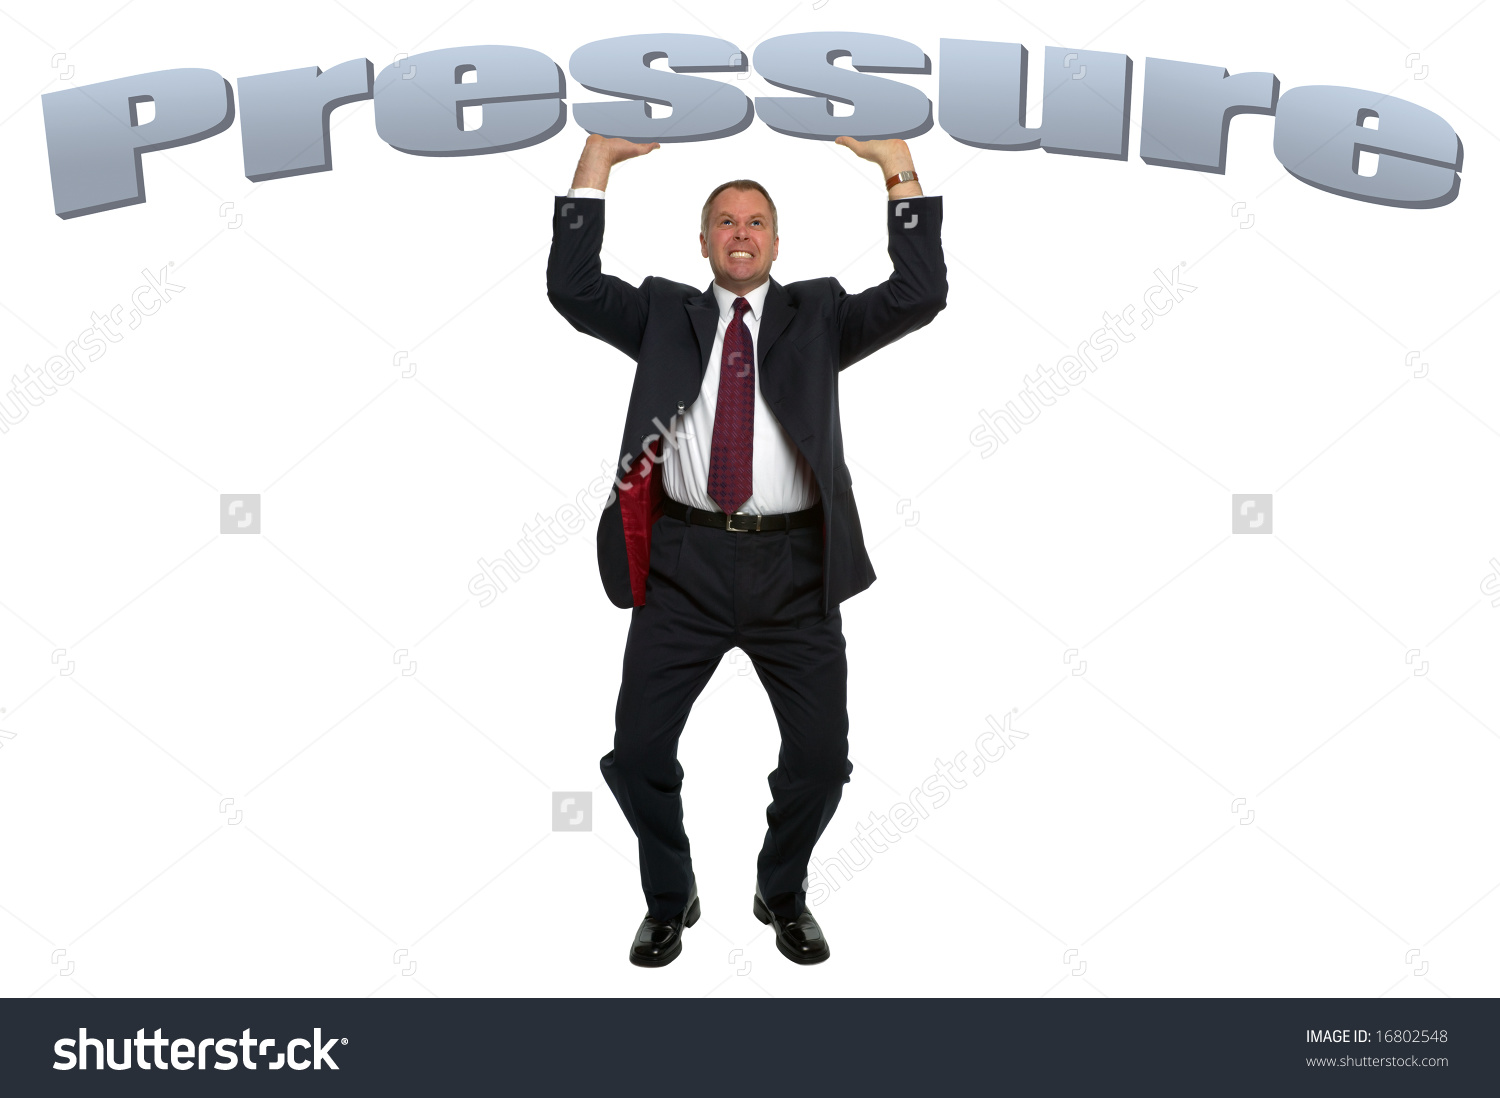 Hot Fluid Under Pressure Clipart